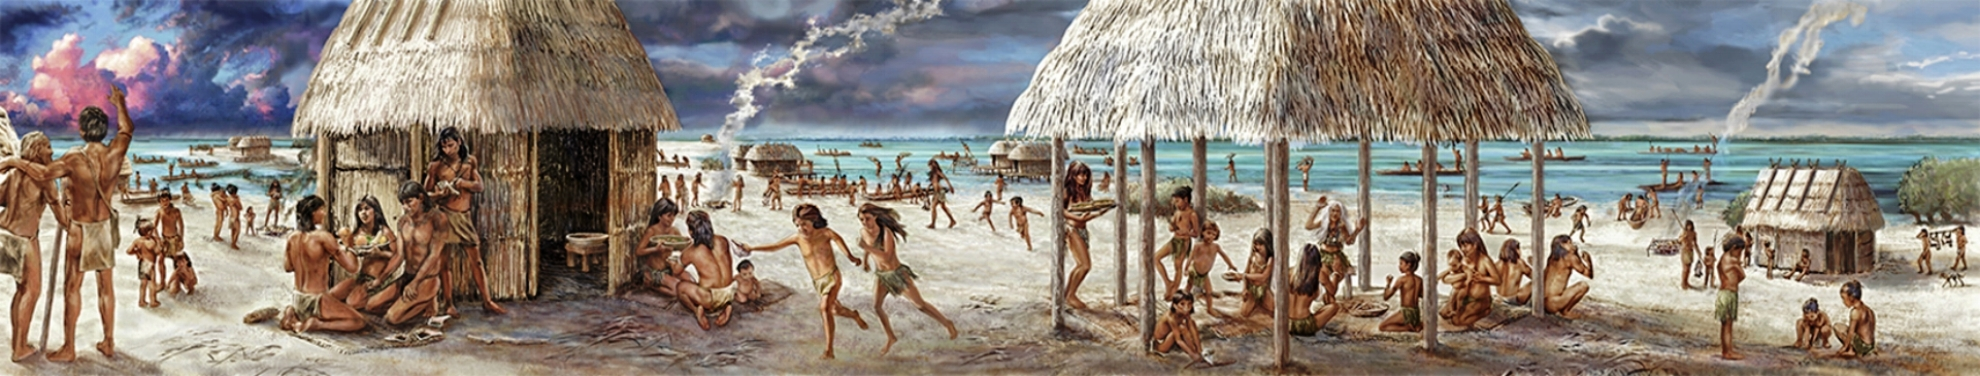 """The Stories Beneath Our Feet""-  Full view  • 8' 7 ""x  44' 7.5"" Digital painting of Florida natives- Calusa tribe on the coast of South FL approx. 600 A.D. • Mound House, Town of Fort Myers, FL © KT"